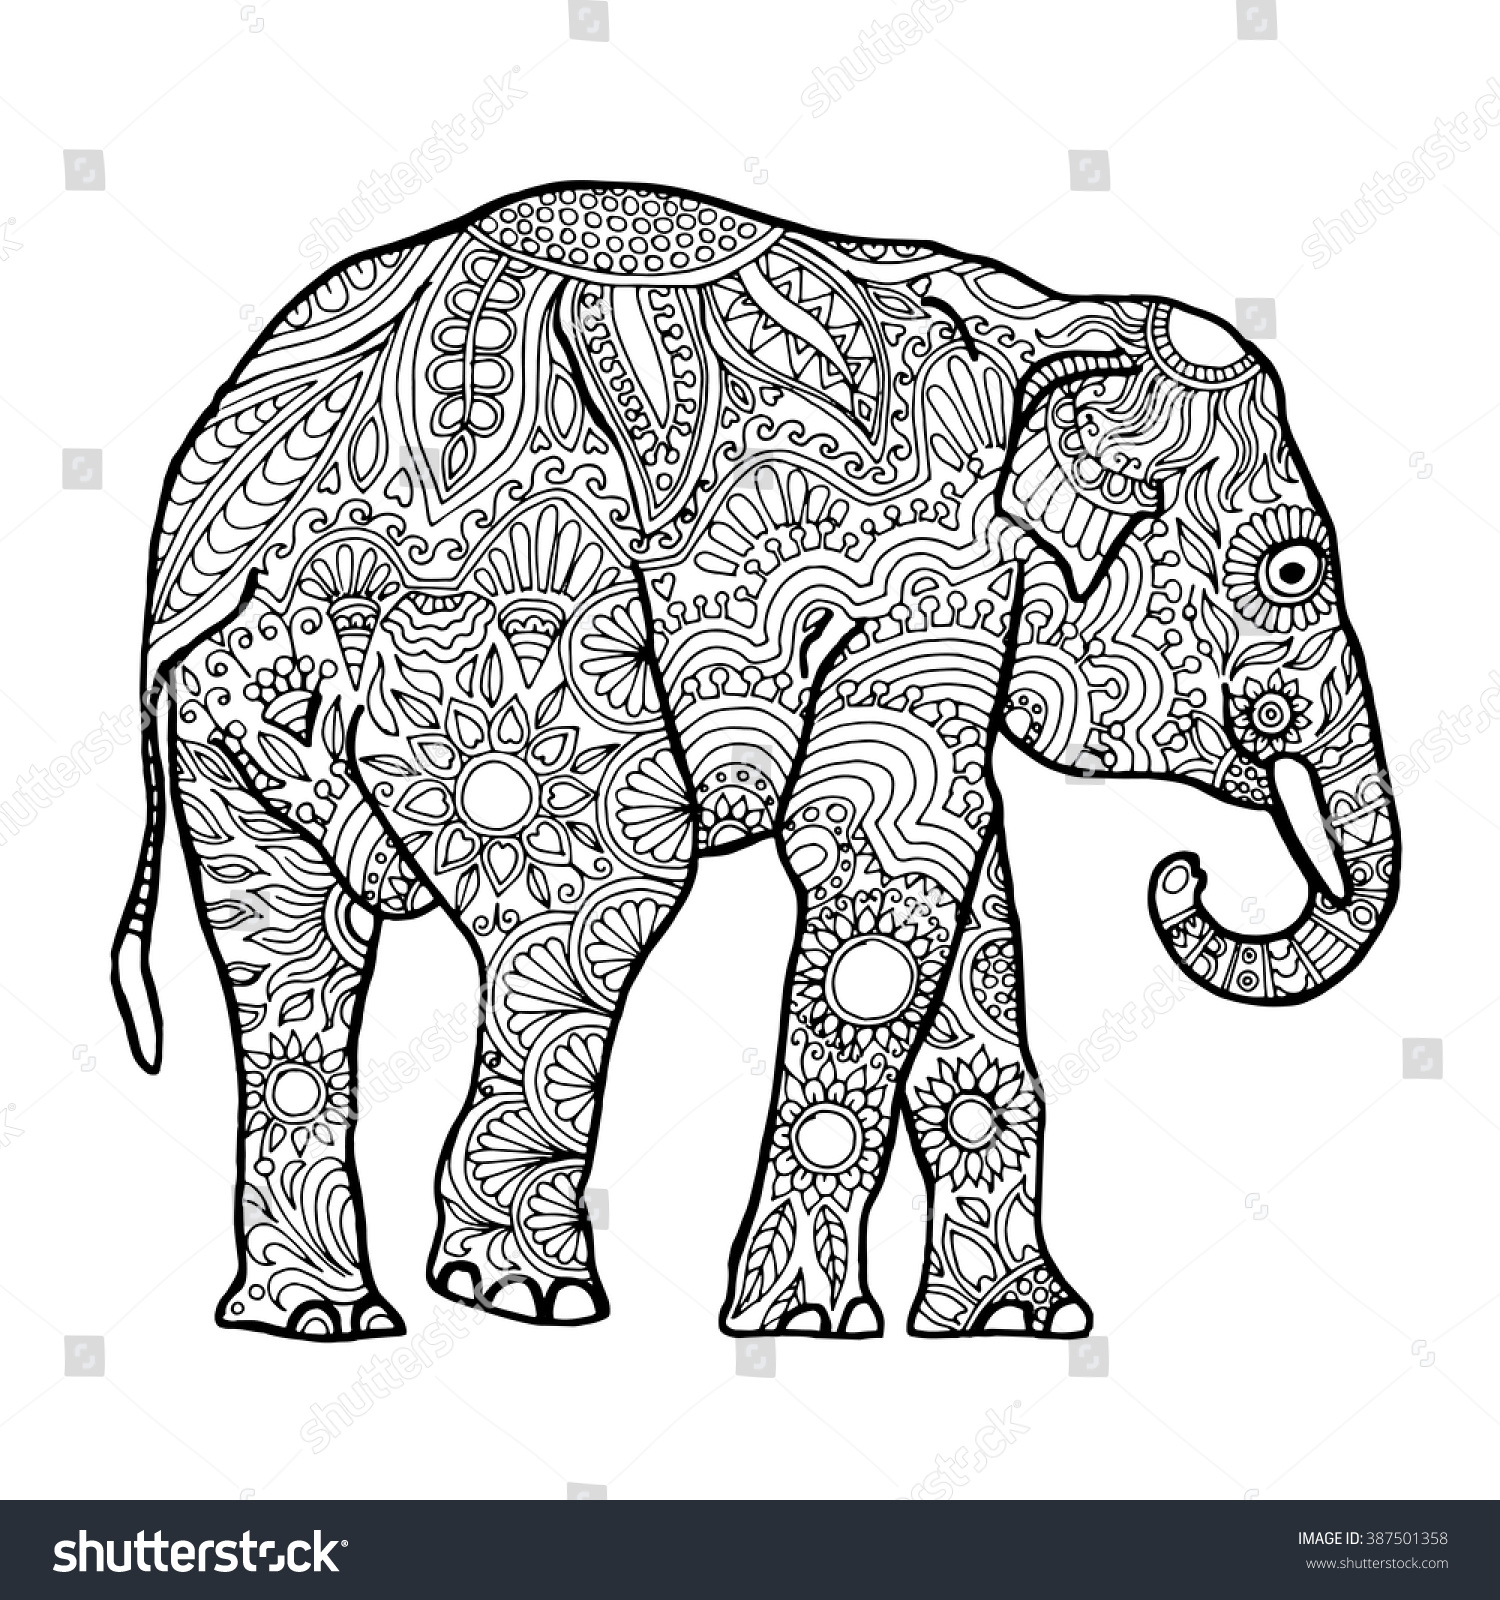 Zen colouring book animals - Asian Elephant Zentangle Animal Page For Adult Colouring Book Vector Design